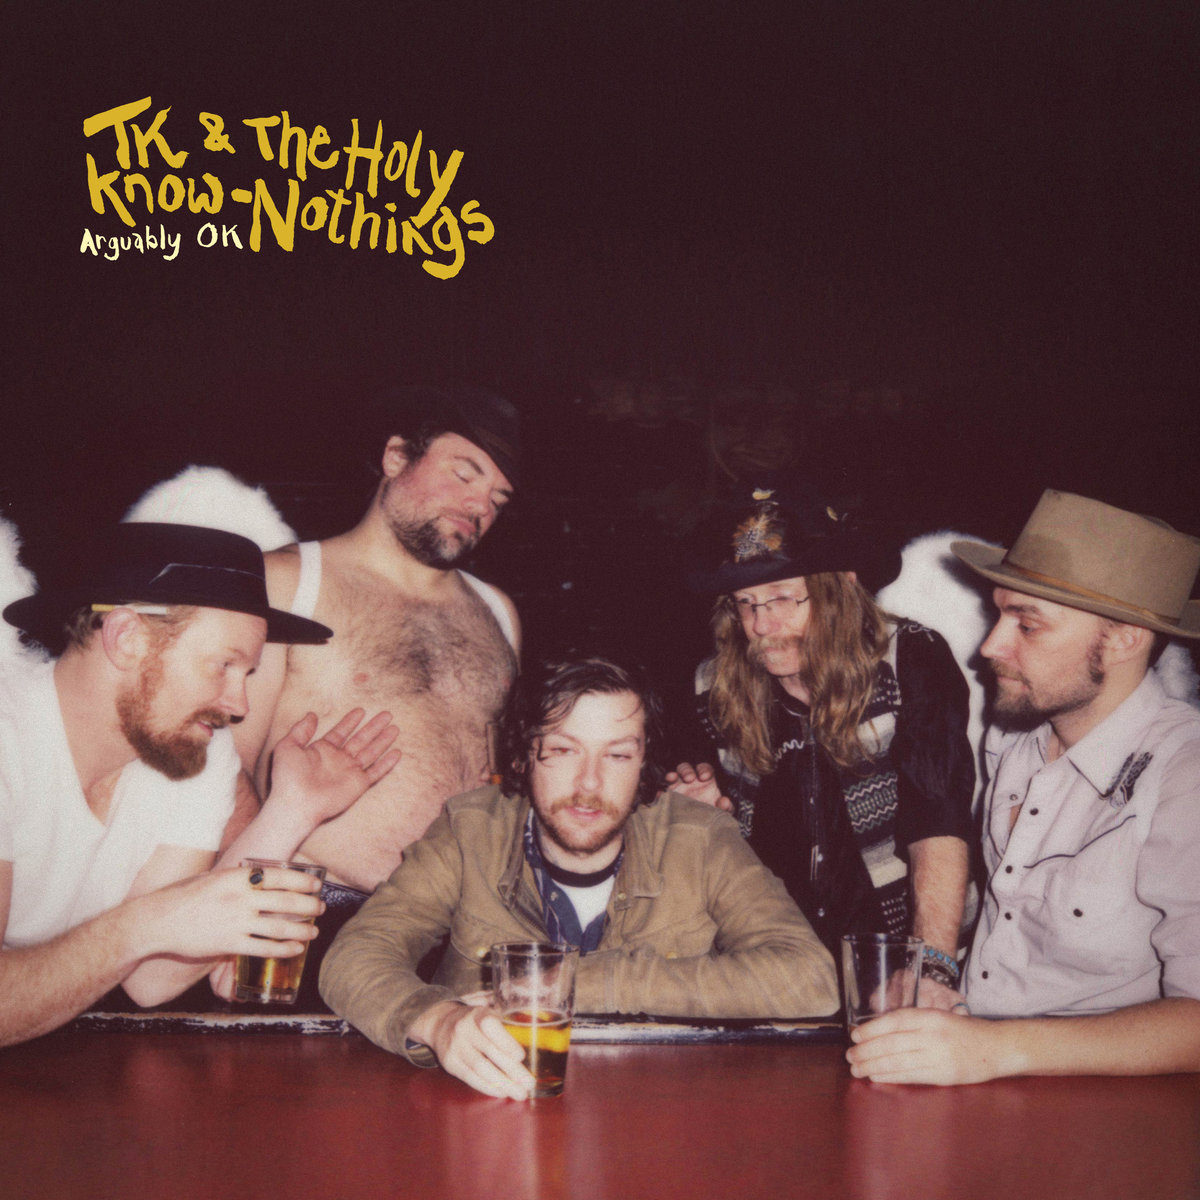 TK & The Holy Know-Nothings – Arguably OK